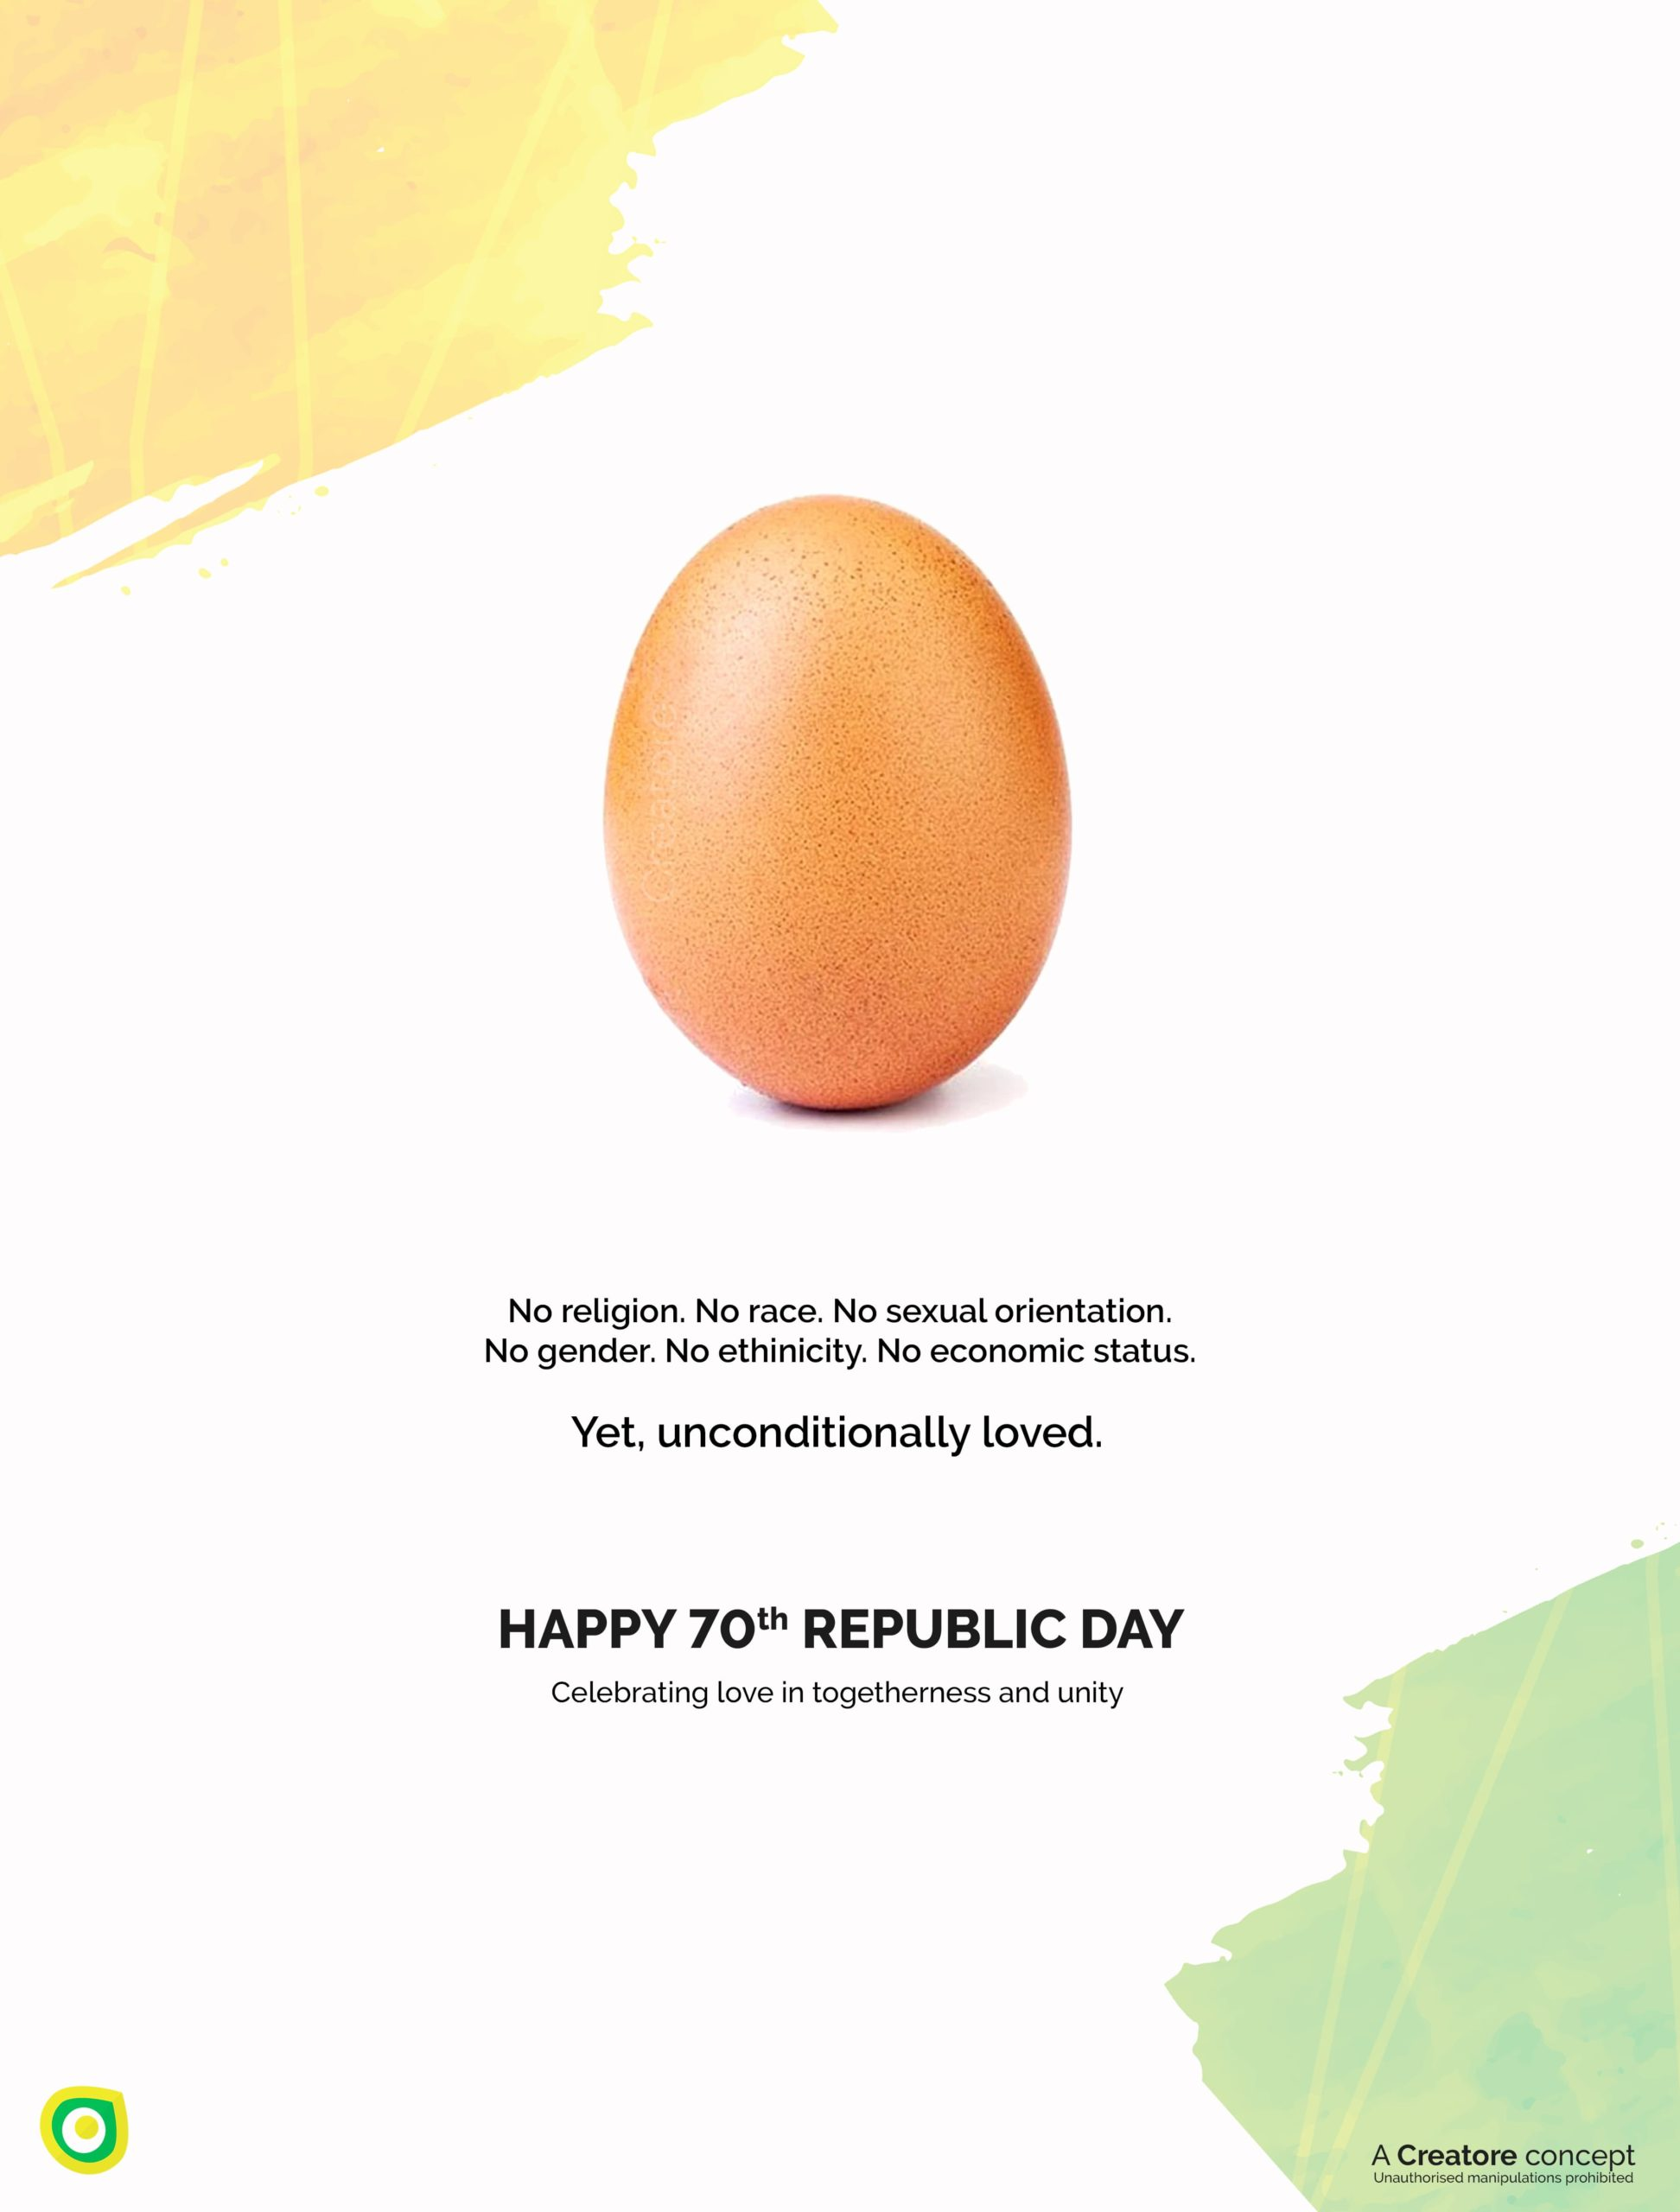 Creative Advertising and Marketing Agency Republic Day Corporate Greeting